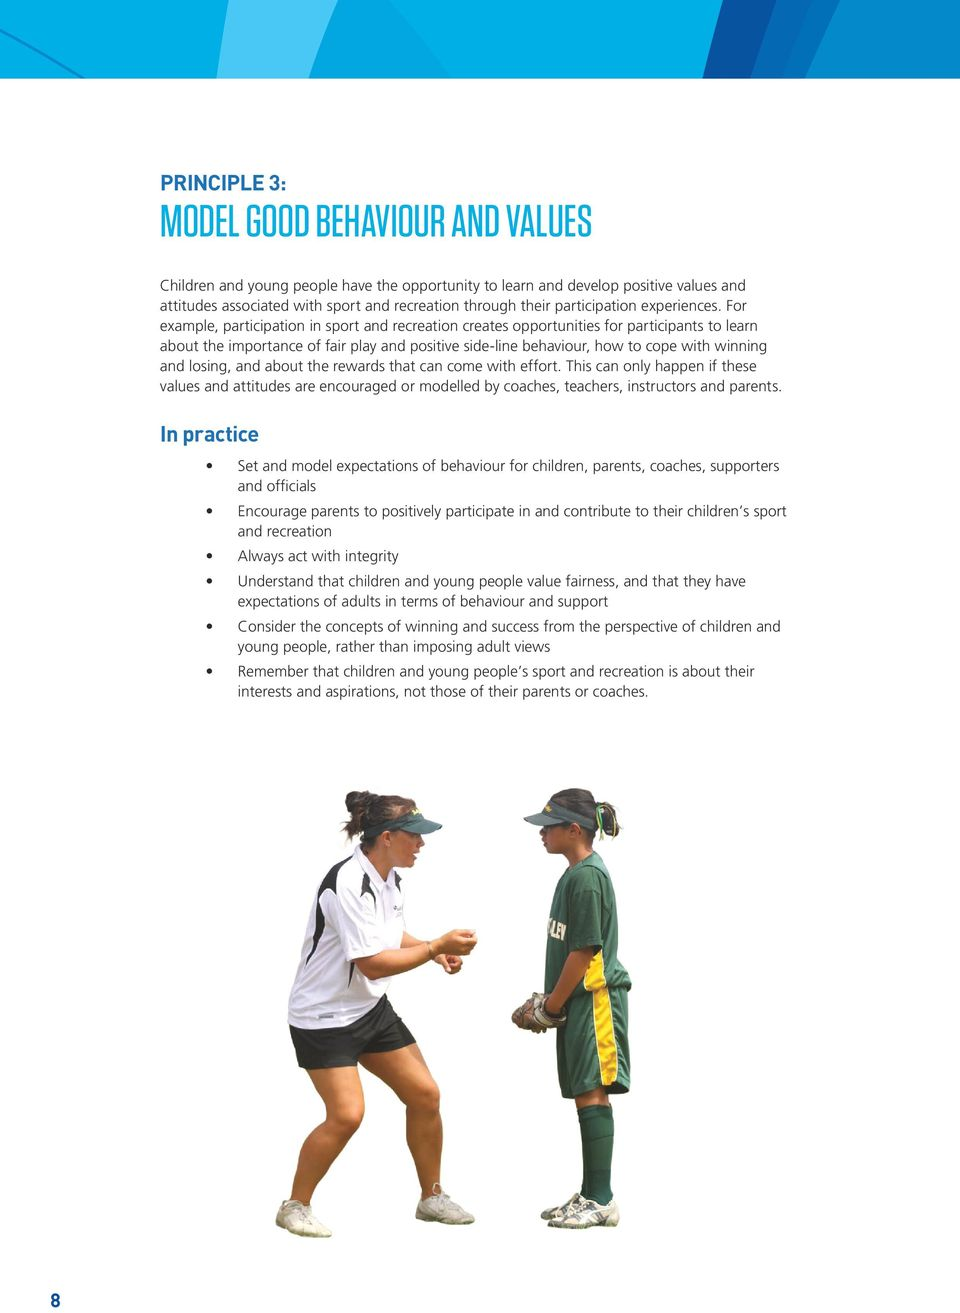 For example, participation in sport and recreation creates opportunities for participants to learn about the importance of fair play and positive side-line behaviour, how to cope with winning and